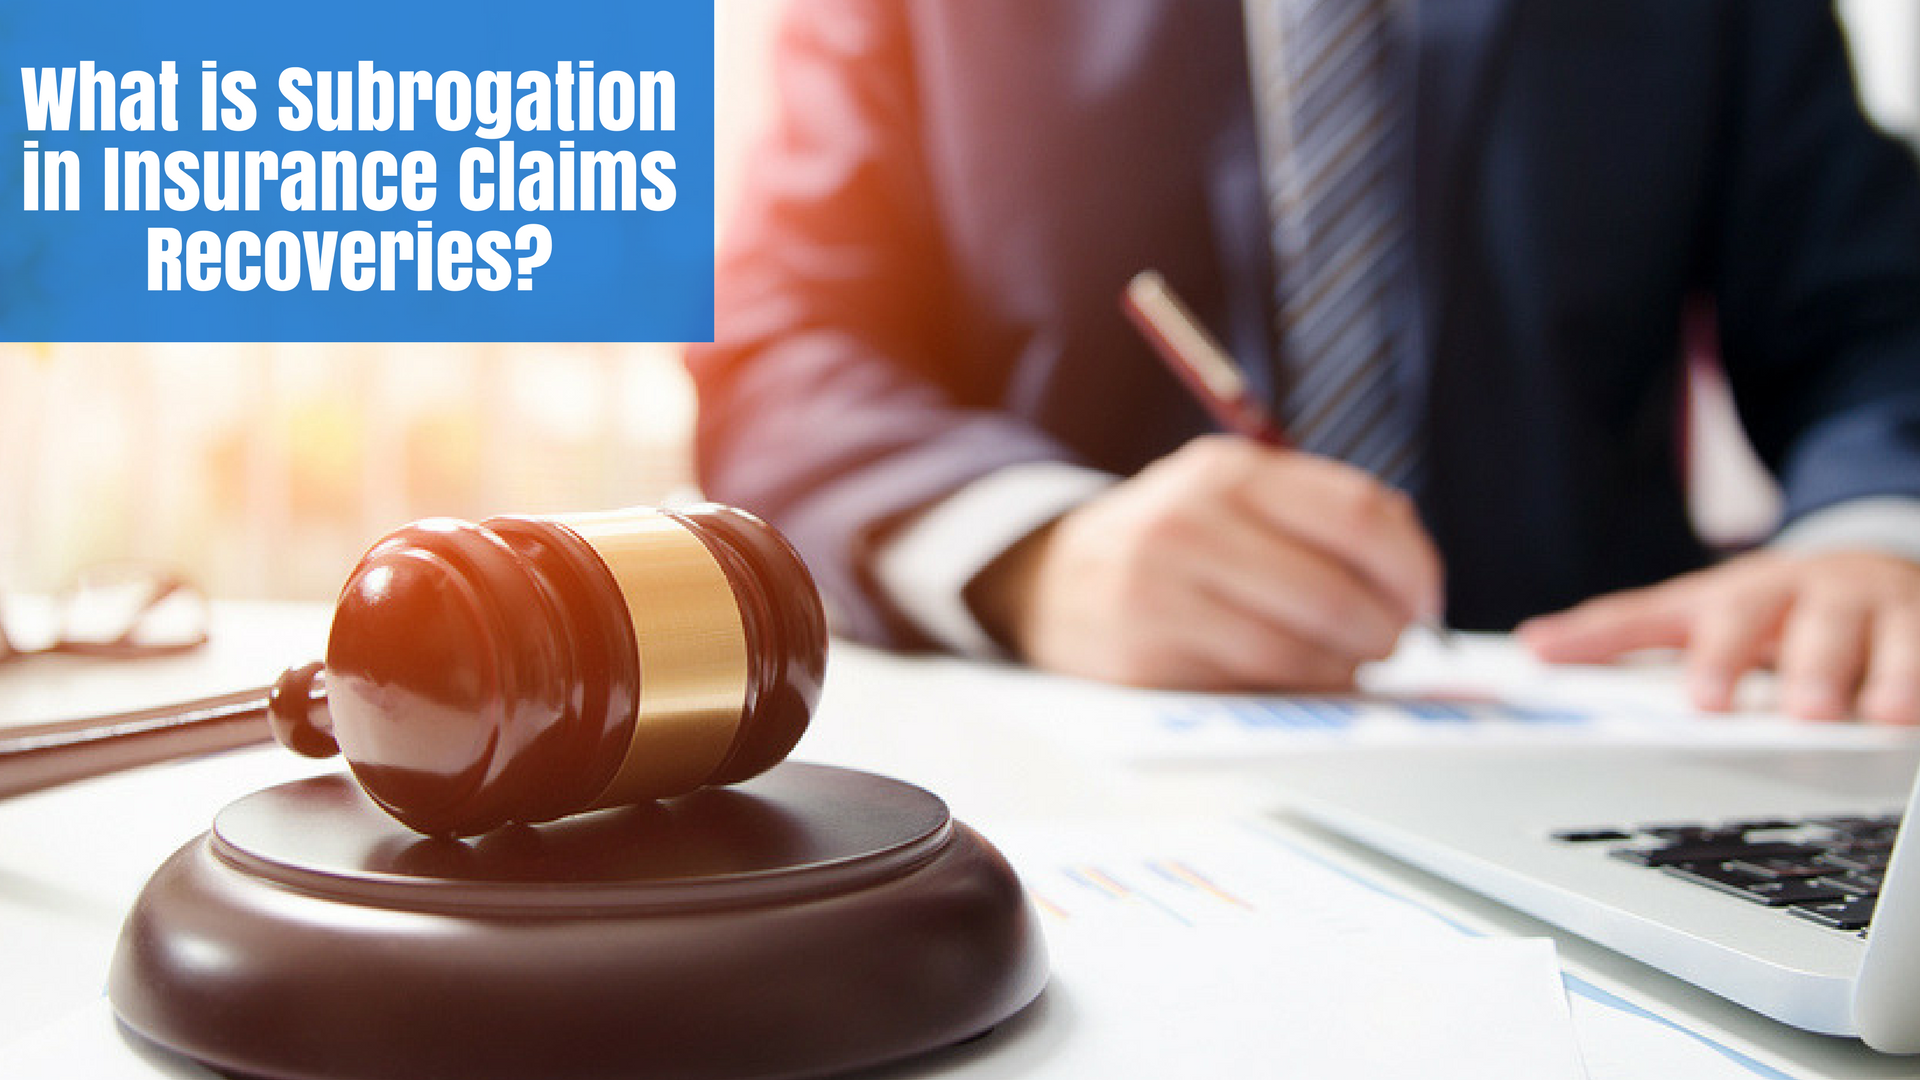 What is Subrogation in Insurance Claims Recoveries?